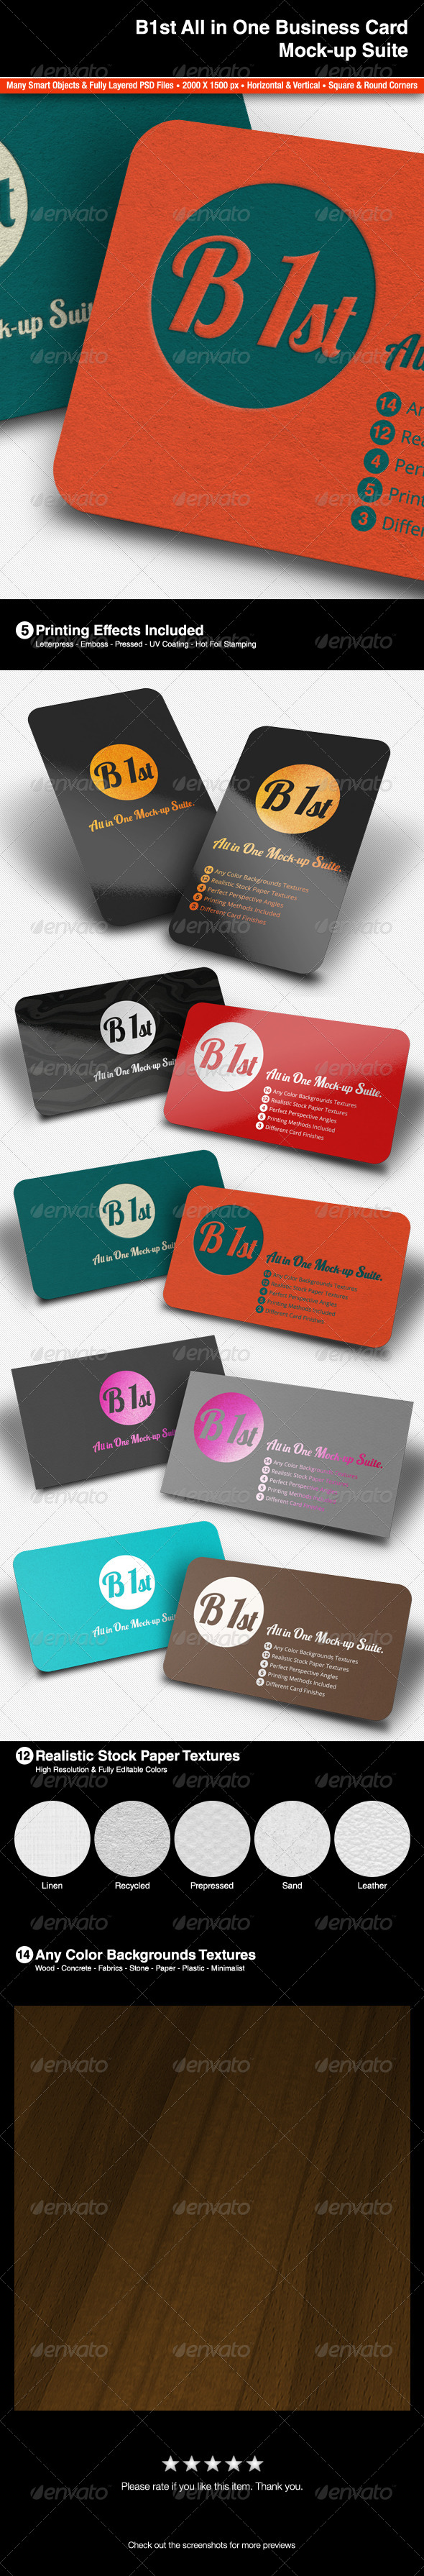 All In One Business Card Mock-Up - Print Product Mock-Ups